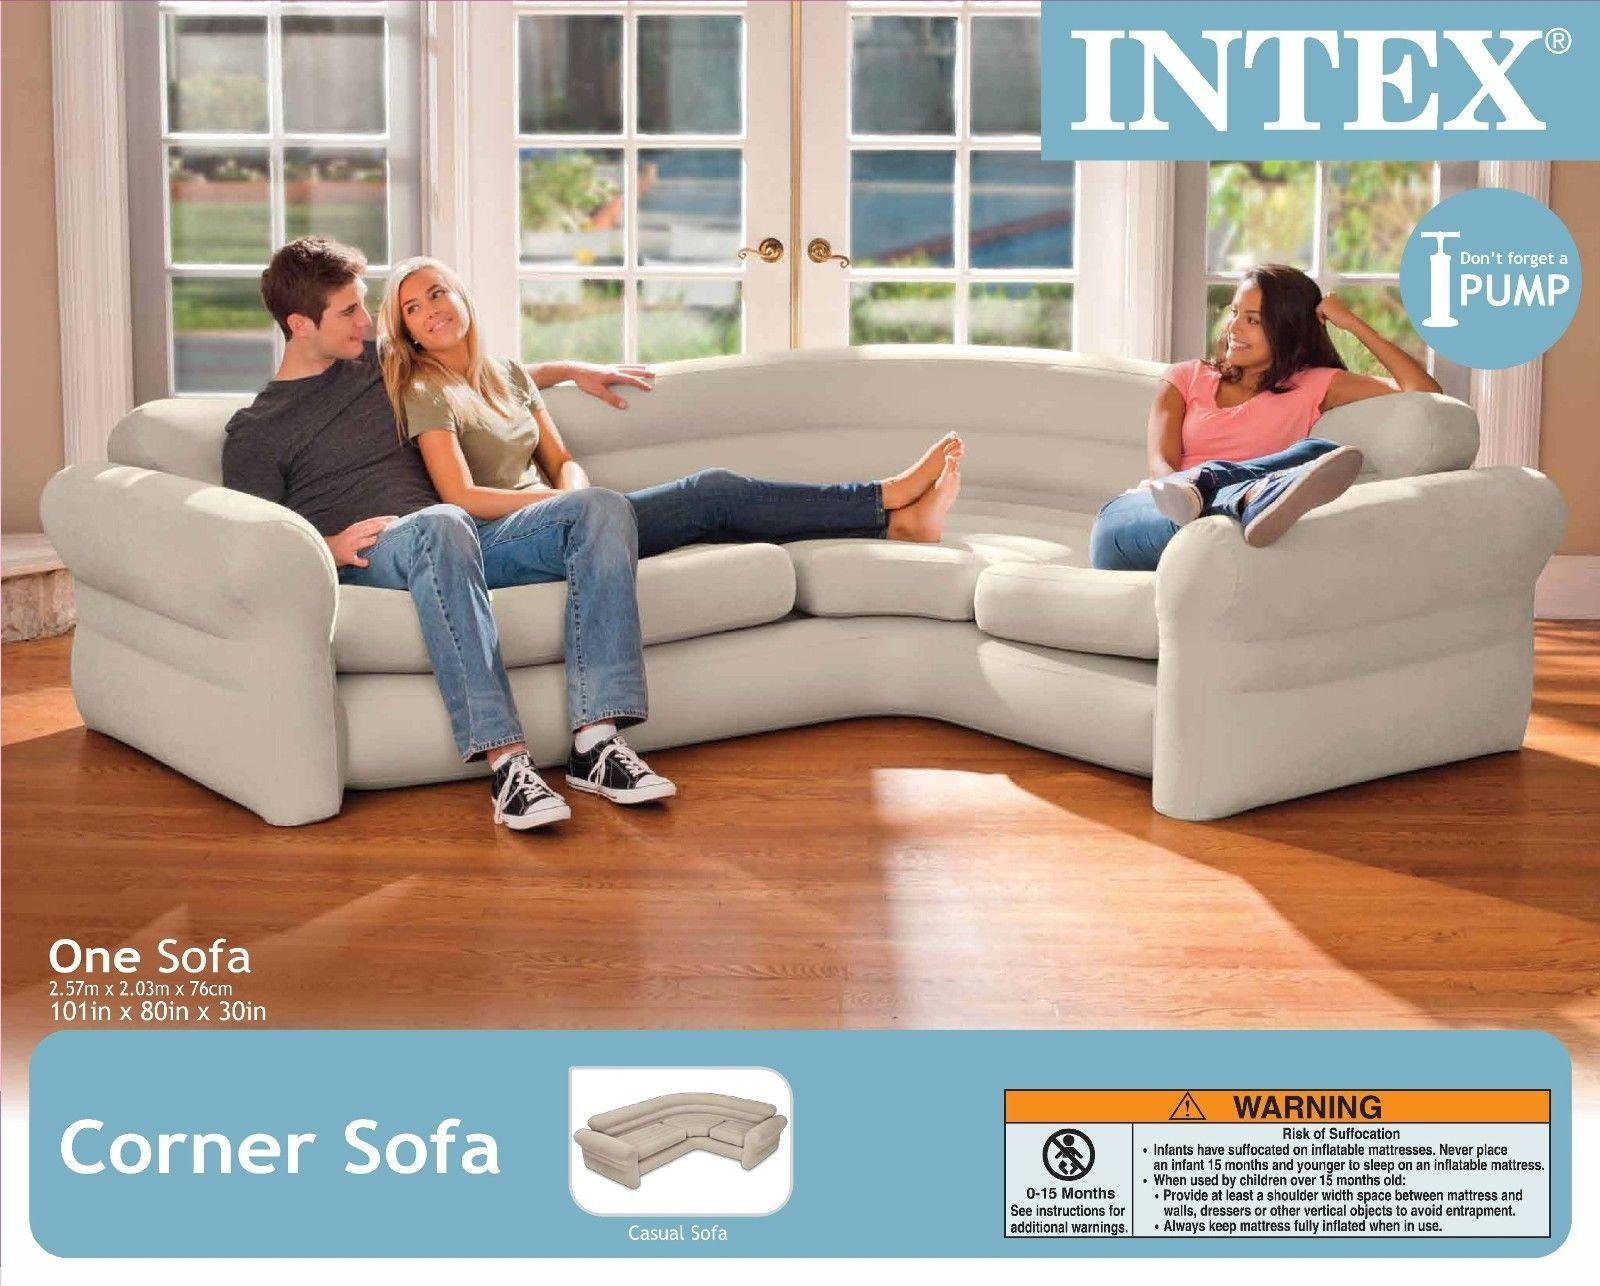 Intex Inflatable Corner Sofa Portable Modern Contemporary Air Intended For Intex Air Couches (Image 9 of 20)